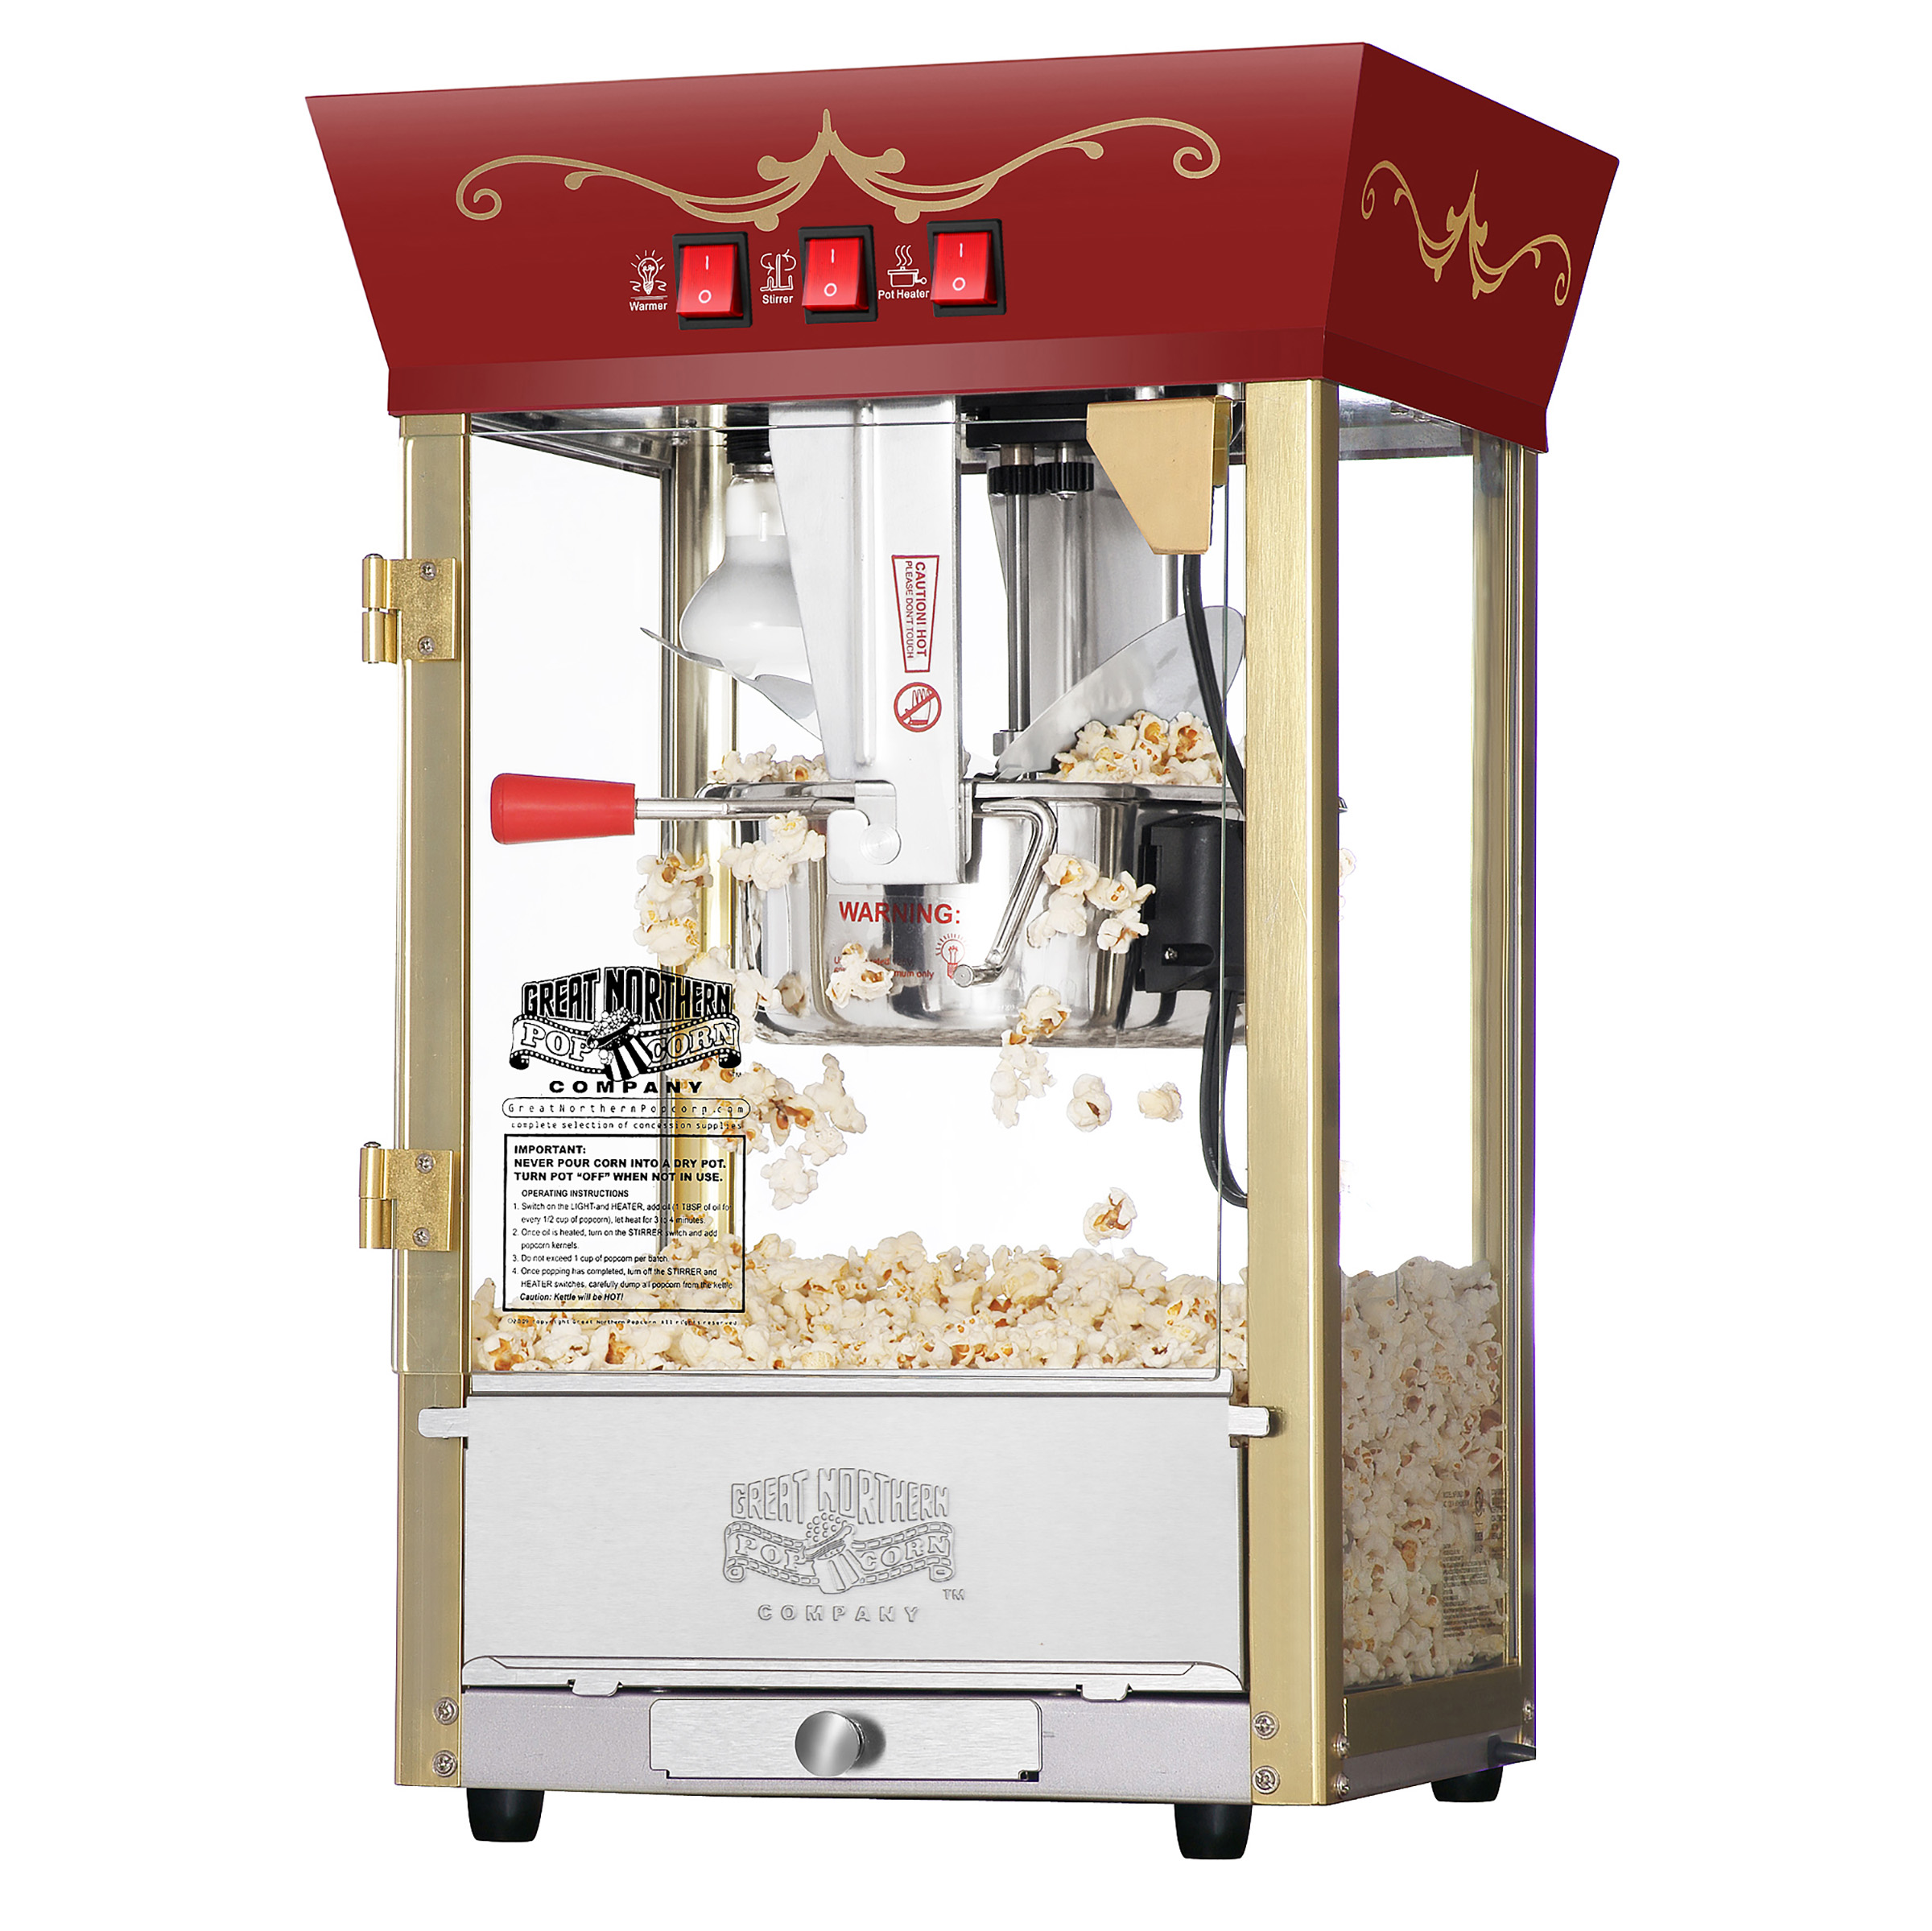 Antique Style Popcorn Popper Machine, 8 Ounce by Great Northern Popcorn